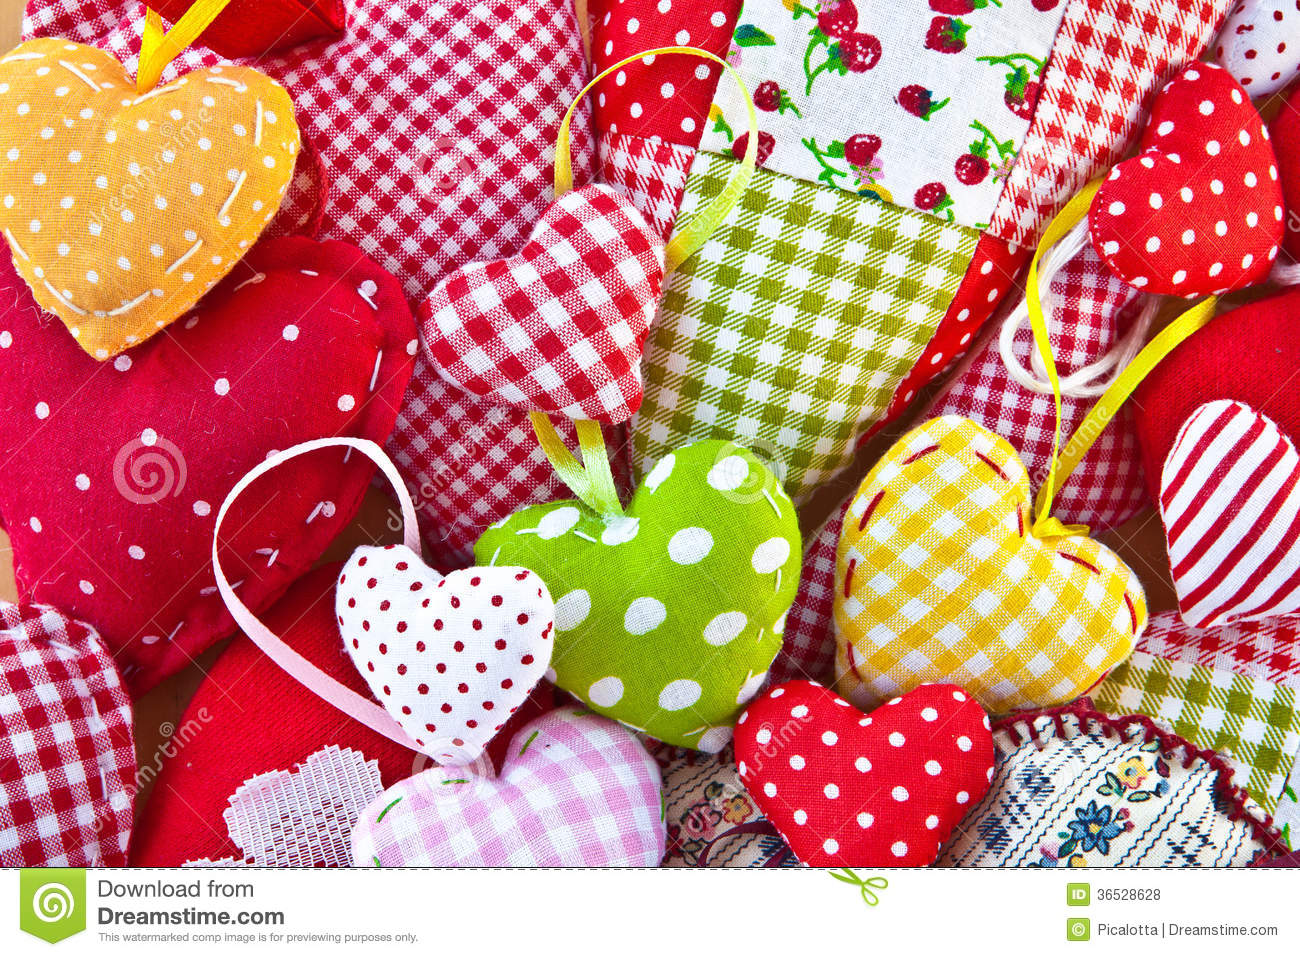 Colorful Hearts Made From Different Patterns Royalty Free Stock.